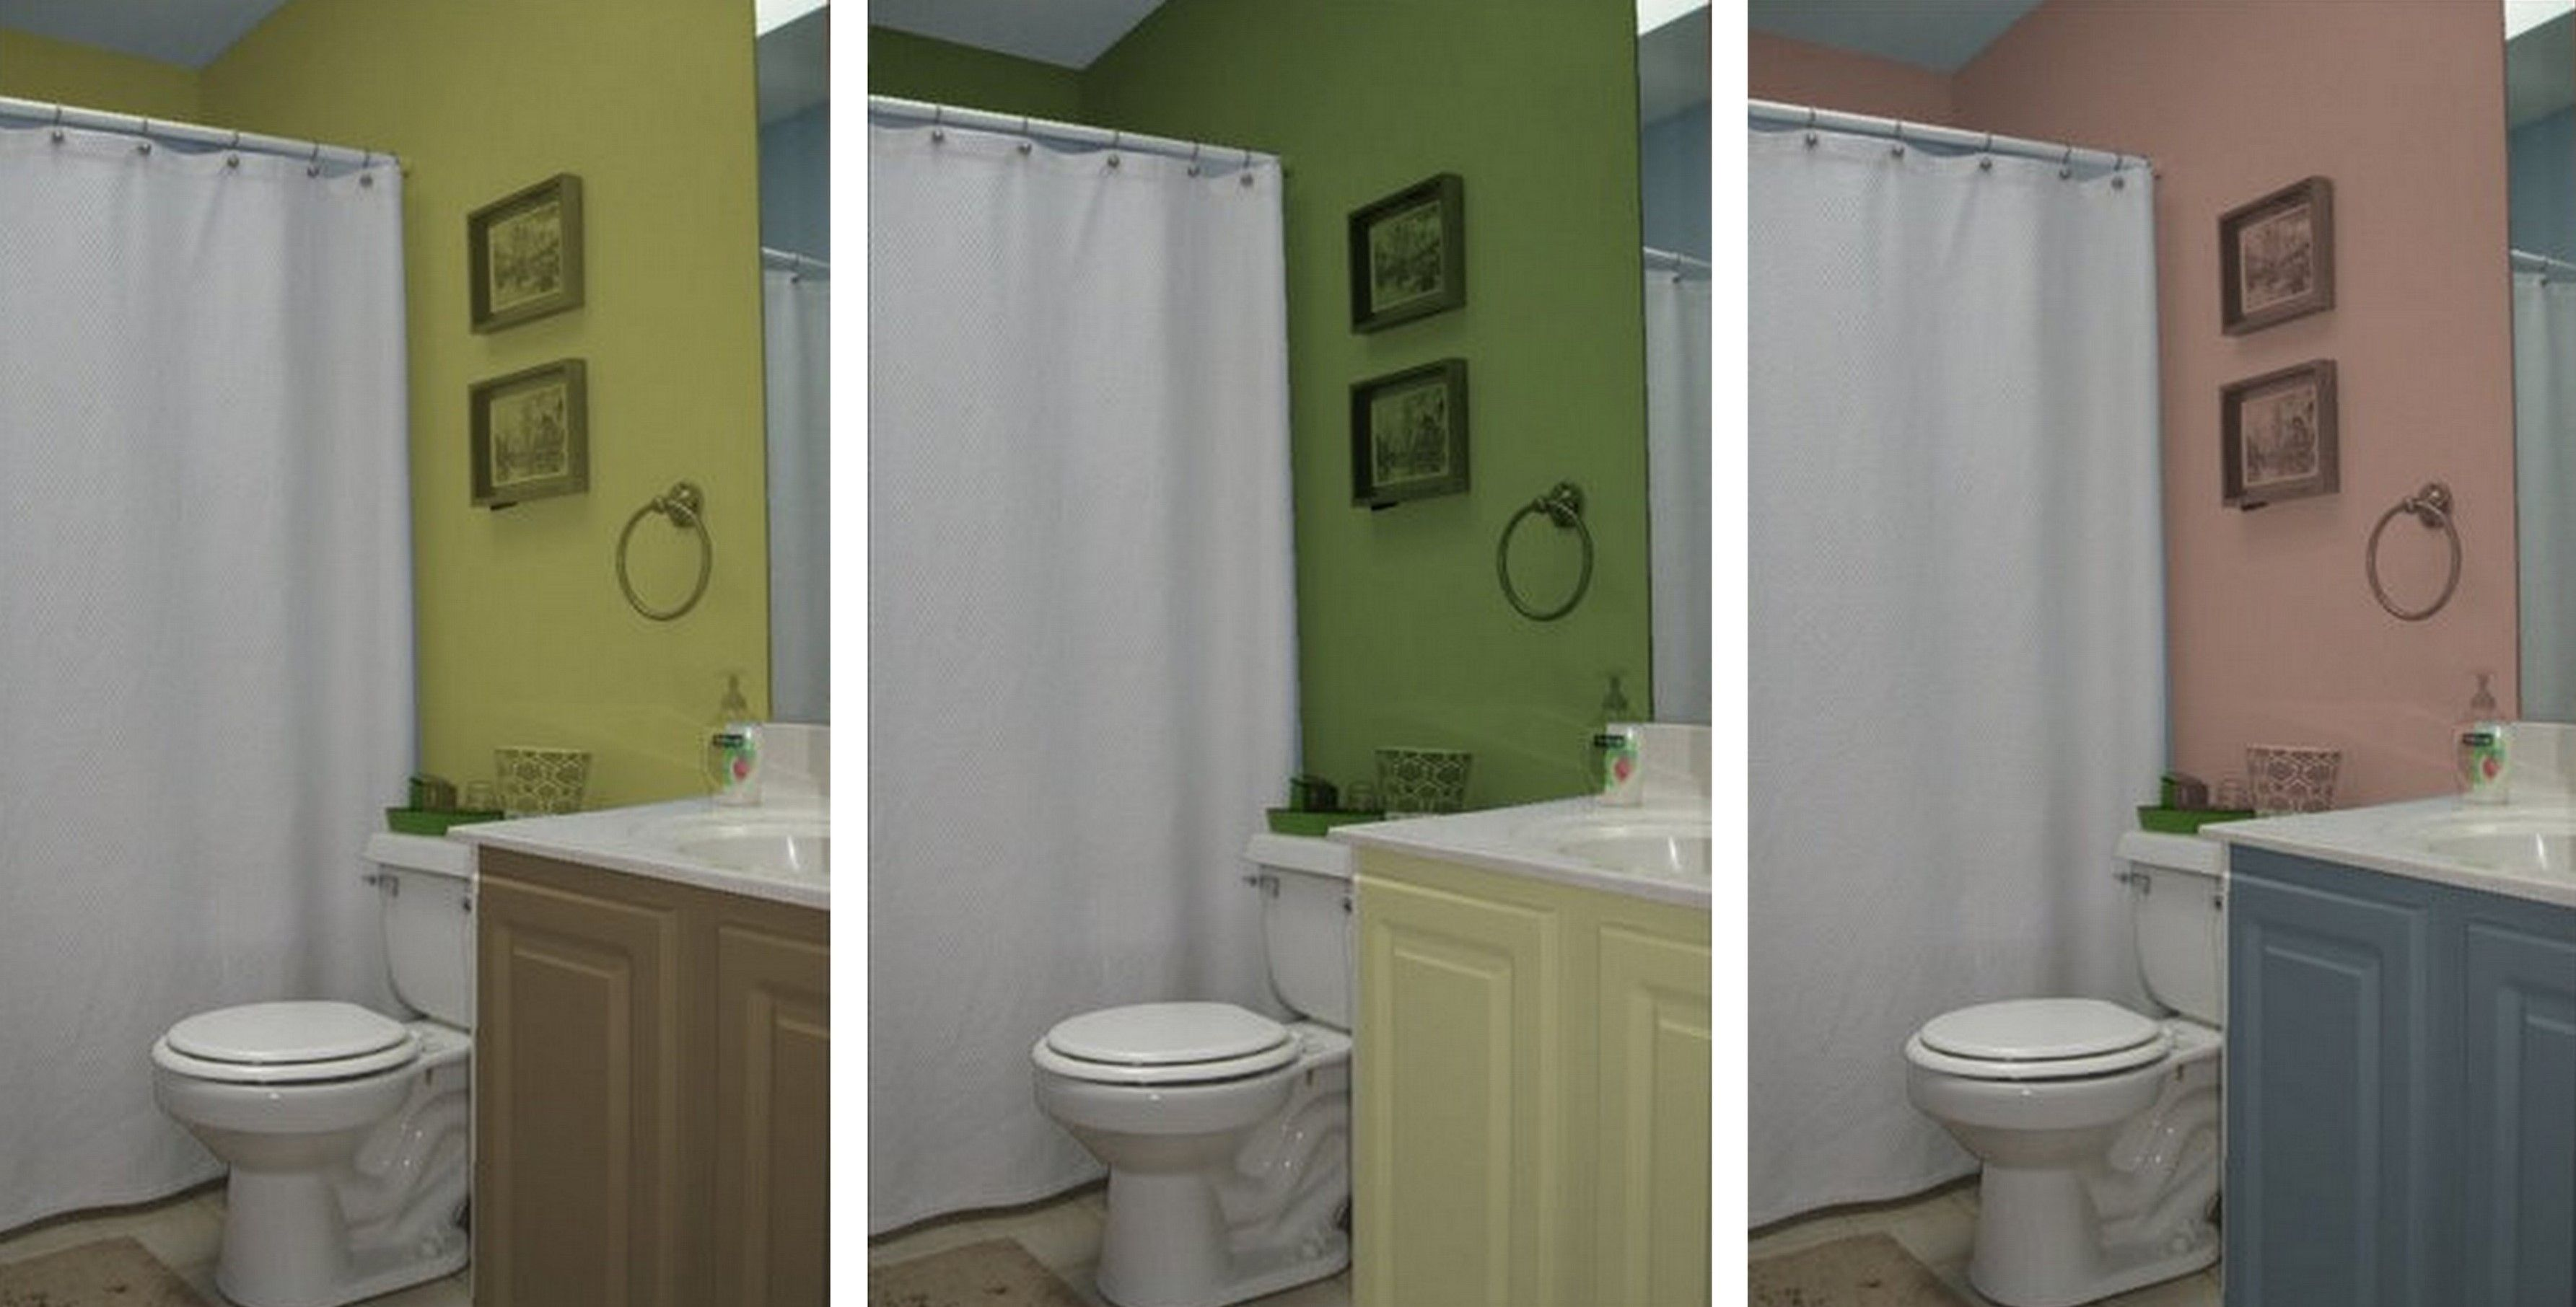 Exceptionnel Type Of Paint Finish For Bathroom   Awesome Bathroom Ideas Make Your Toilet  Appealing And Captivating With Plan And A Tiny I